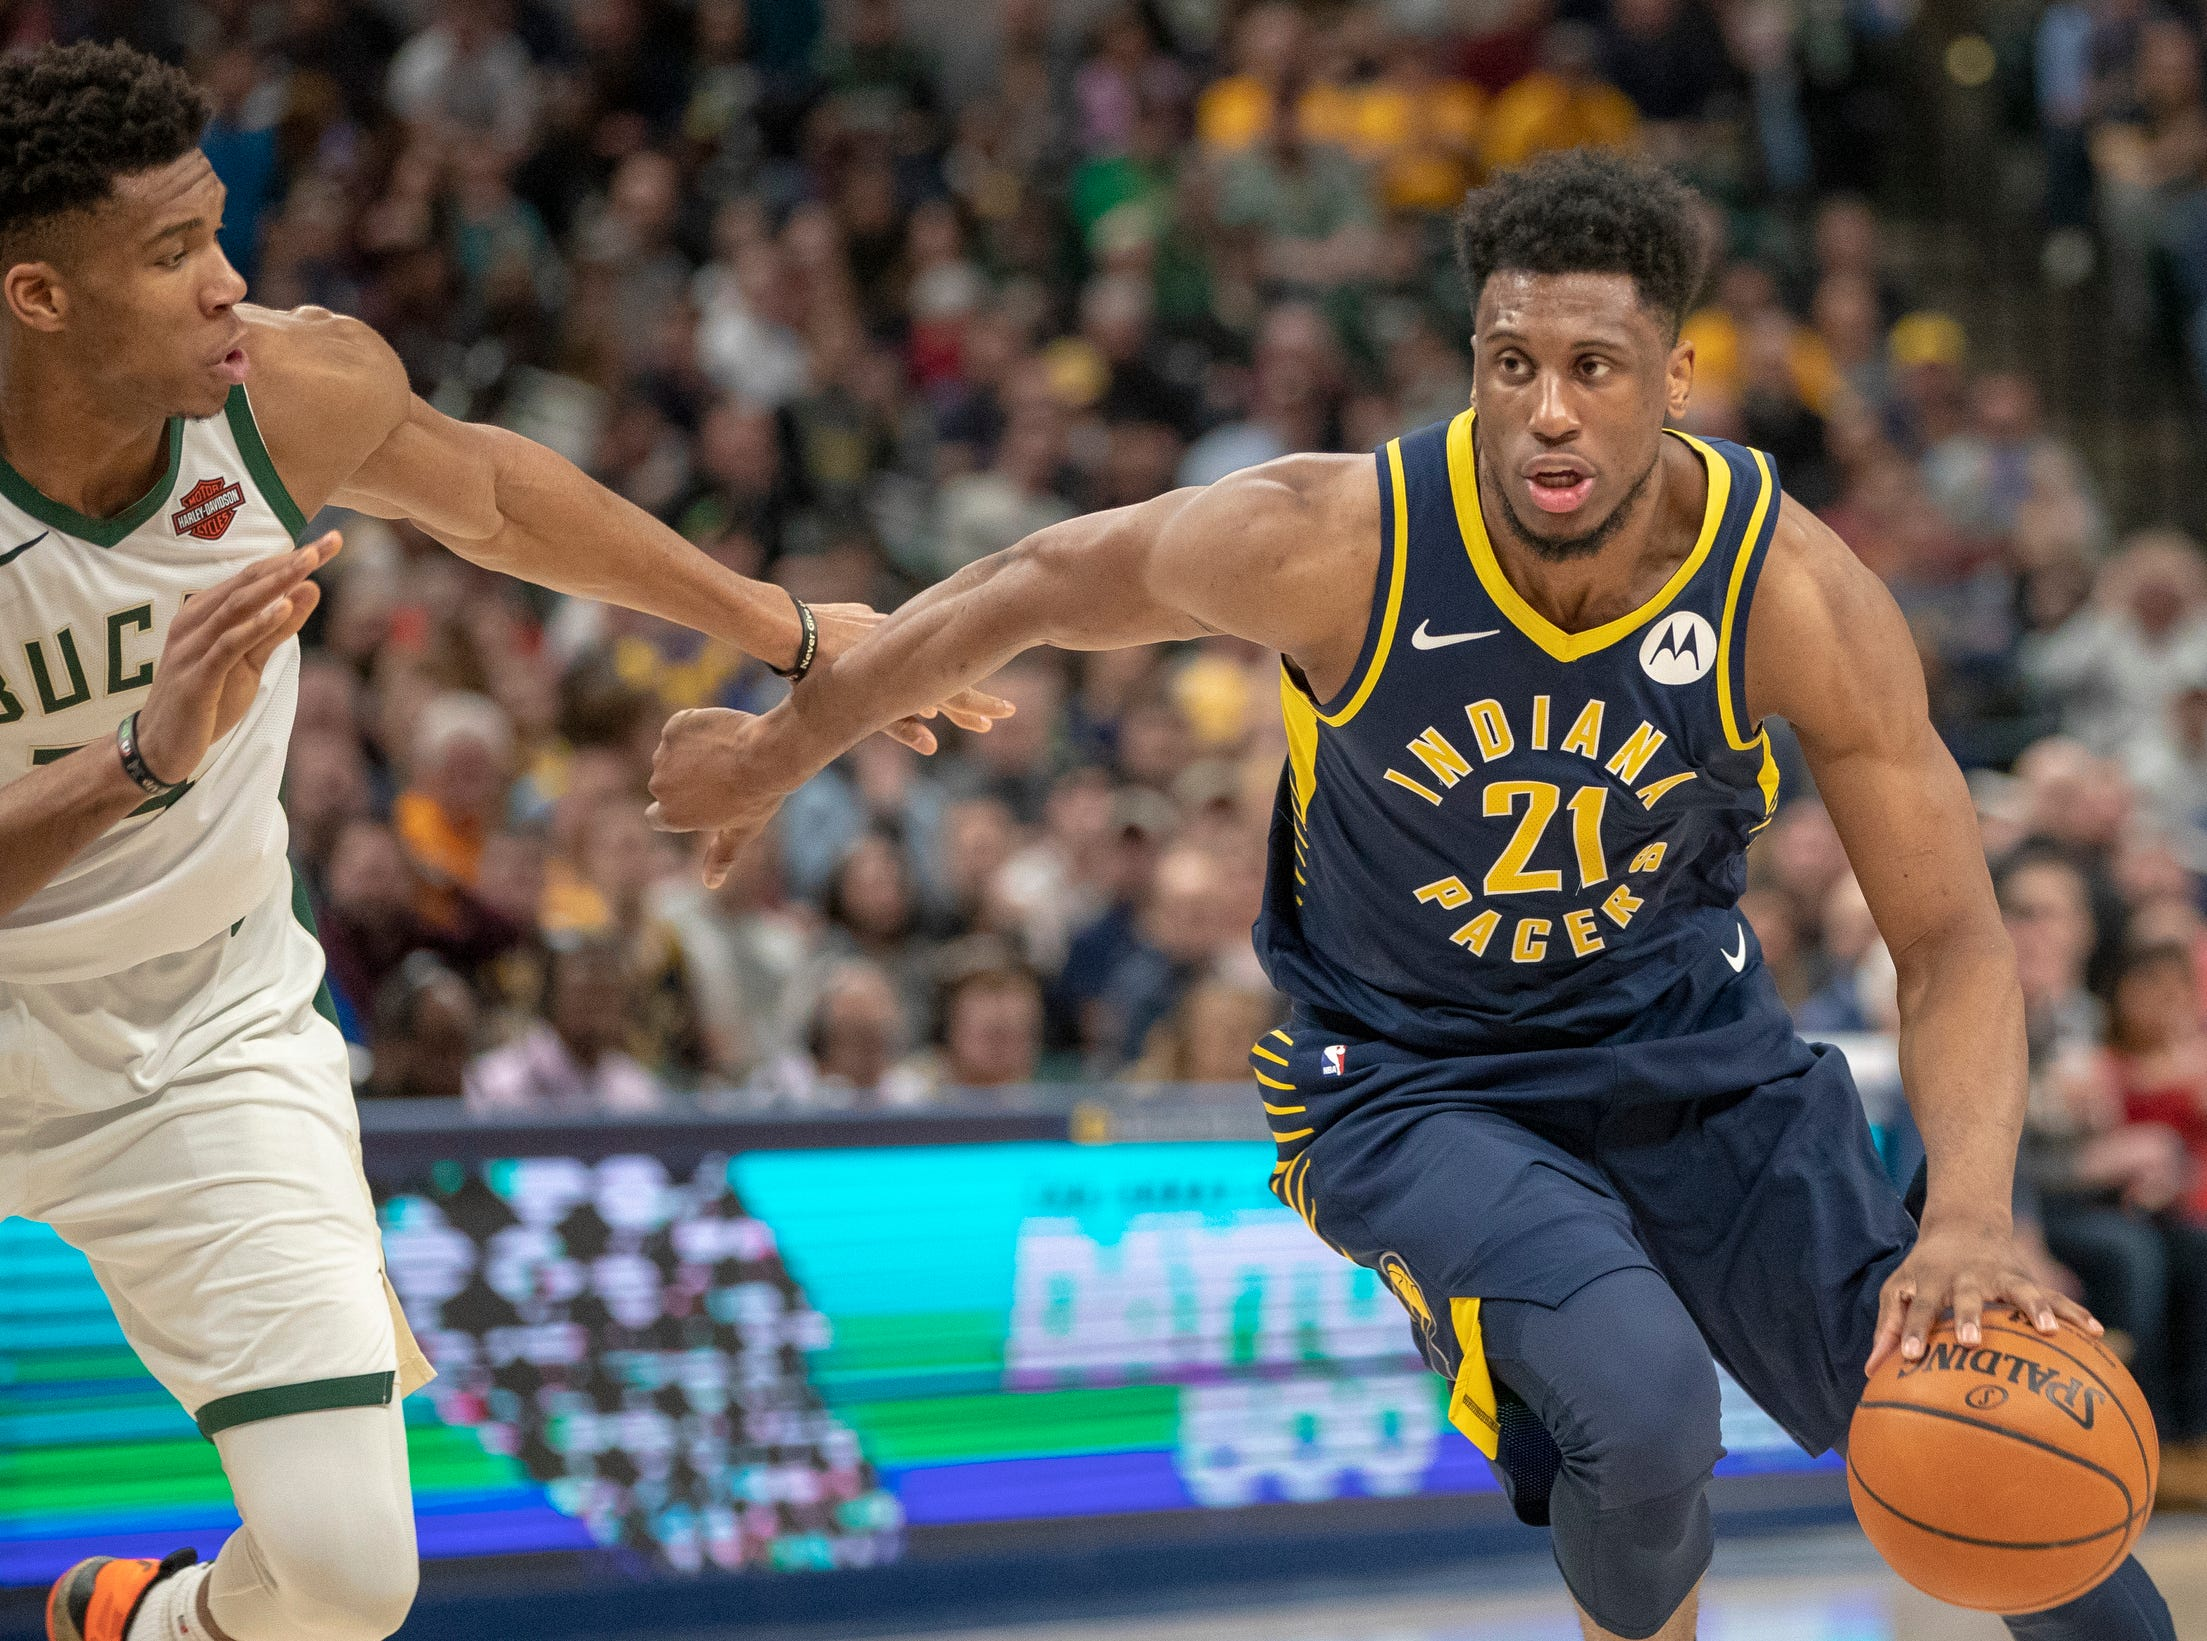 Thaddeus Young of the Indiana Pacers looks to drive on Giannis Antetokounmpo of the Milwaukee Bucks, Bankers Life Fieldhouse, Indianapolis, Wednesday, Feb. 13, 2019. Milwaukee won 106-97.